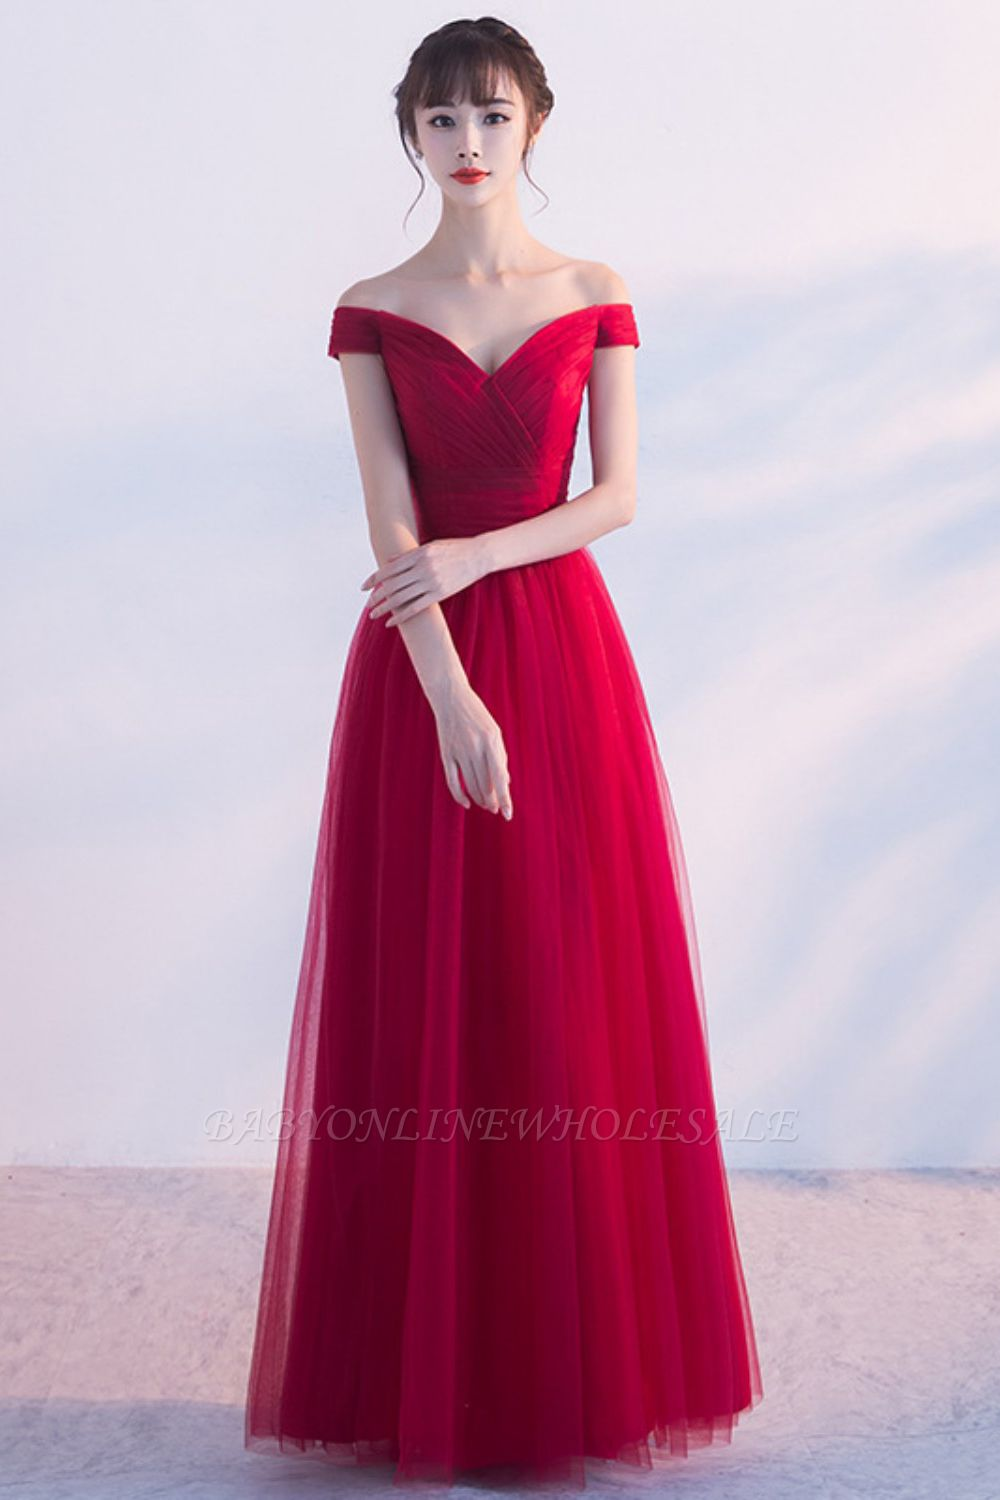 A-line Floor Length Off-the-shoulder Lace-up Ruffled Tulle Prom Dresses/Formal Evening Gowns  with Sash